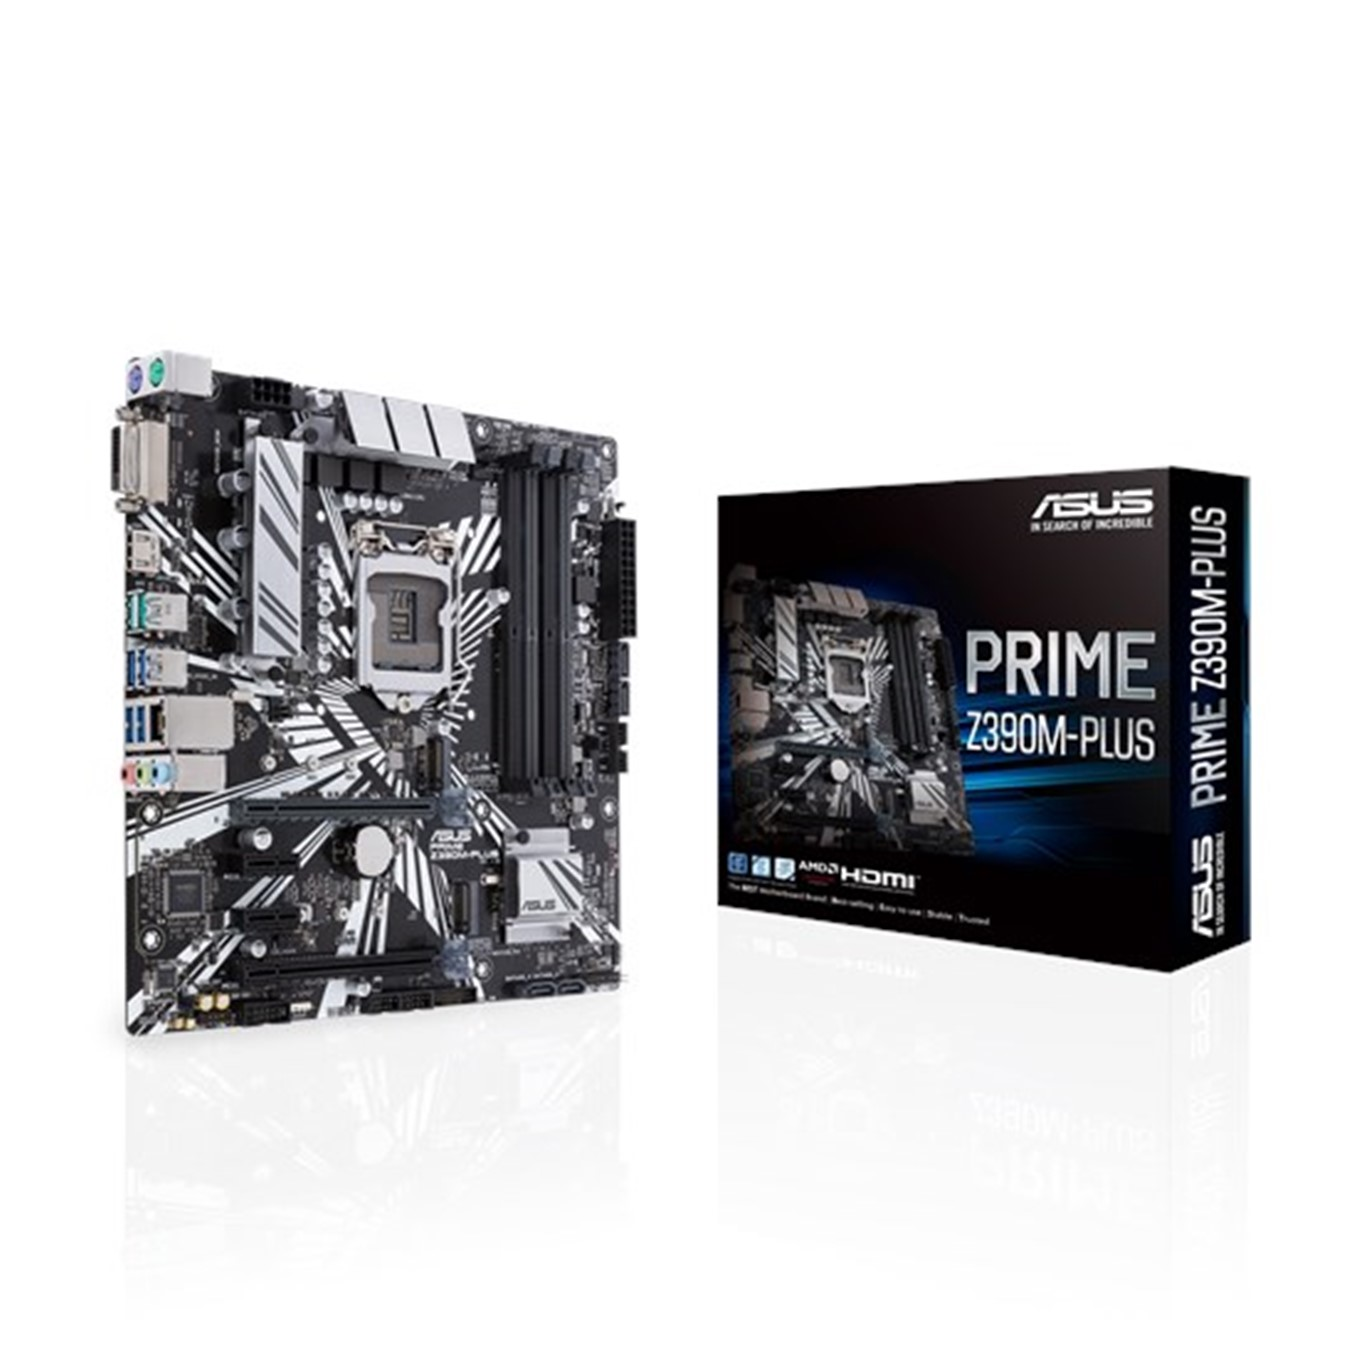 PLACA BASE ASUS PRIME Z390M-PLUS SOCKET 1151 DDR4X4